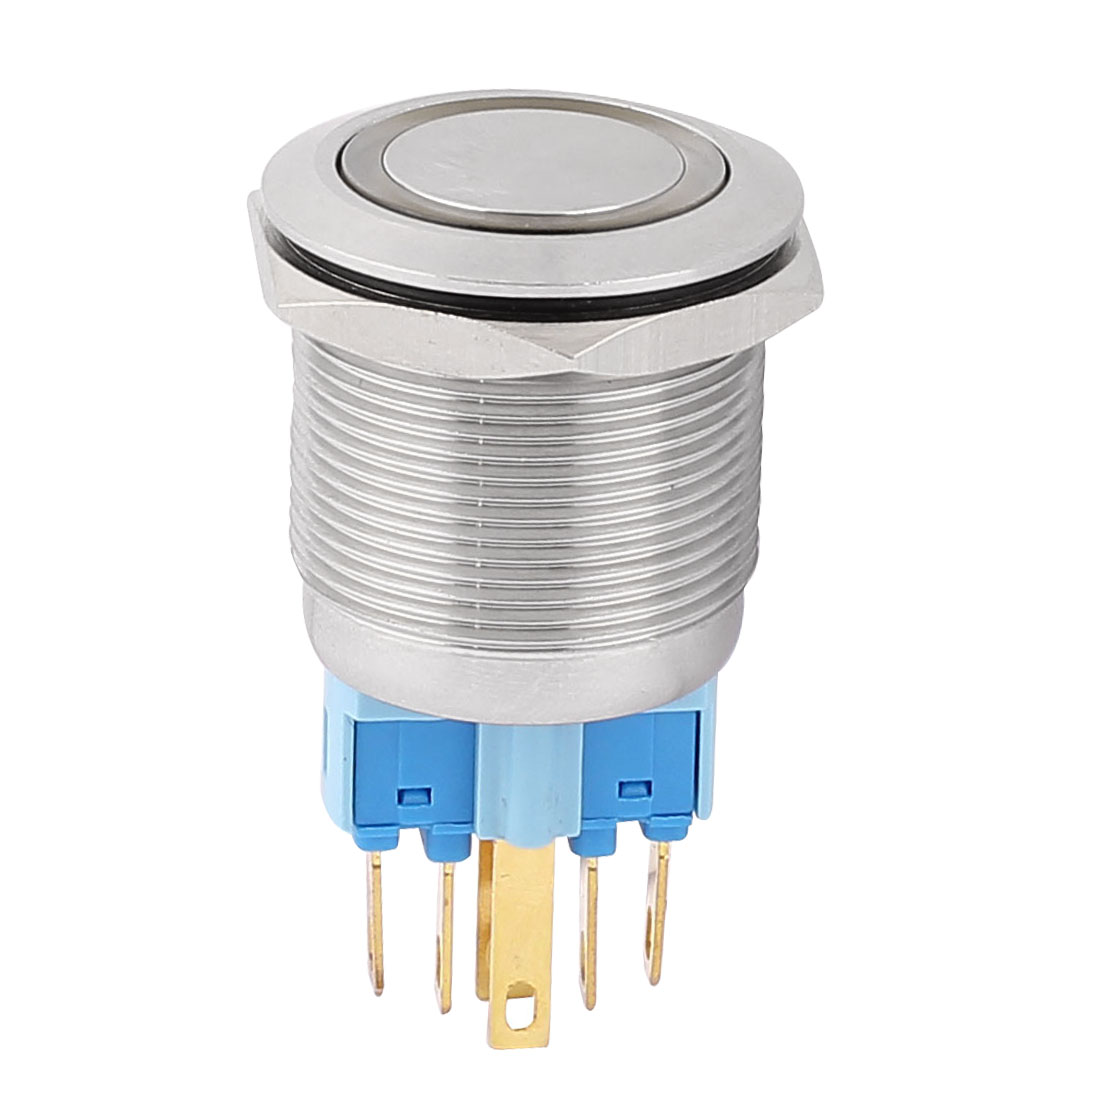 AC 220V 18mm Yellow LED Light 22mm Mounted Thread 6 Pins DPST NO/NC Latching Push Button Switch